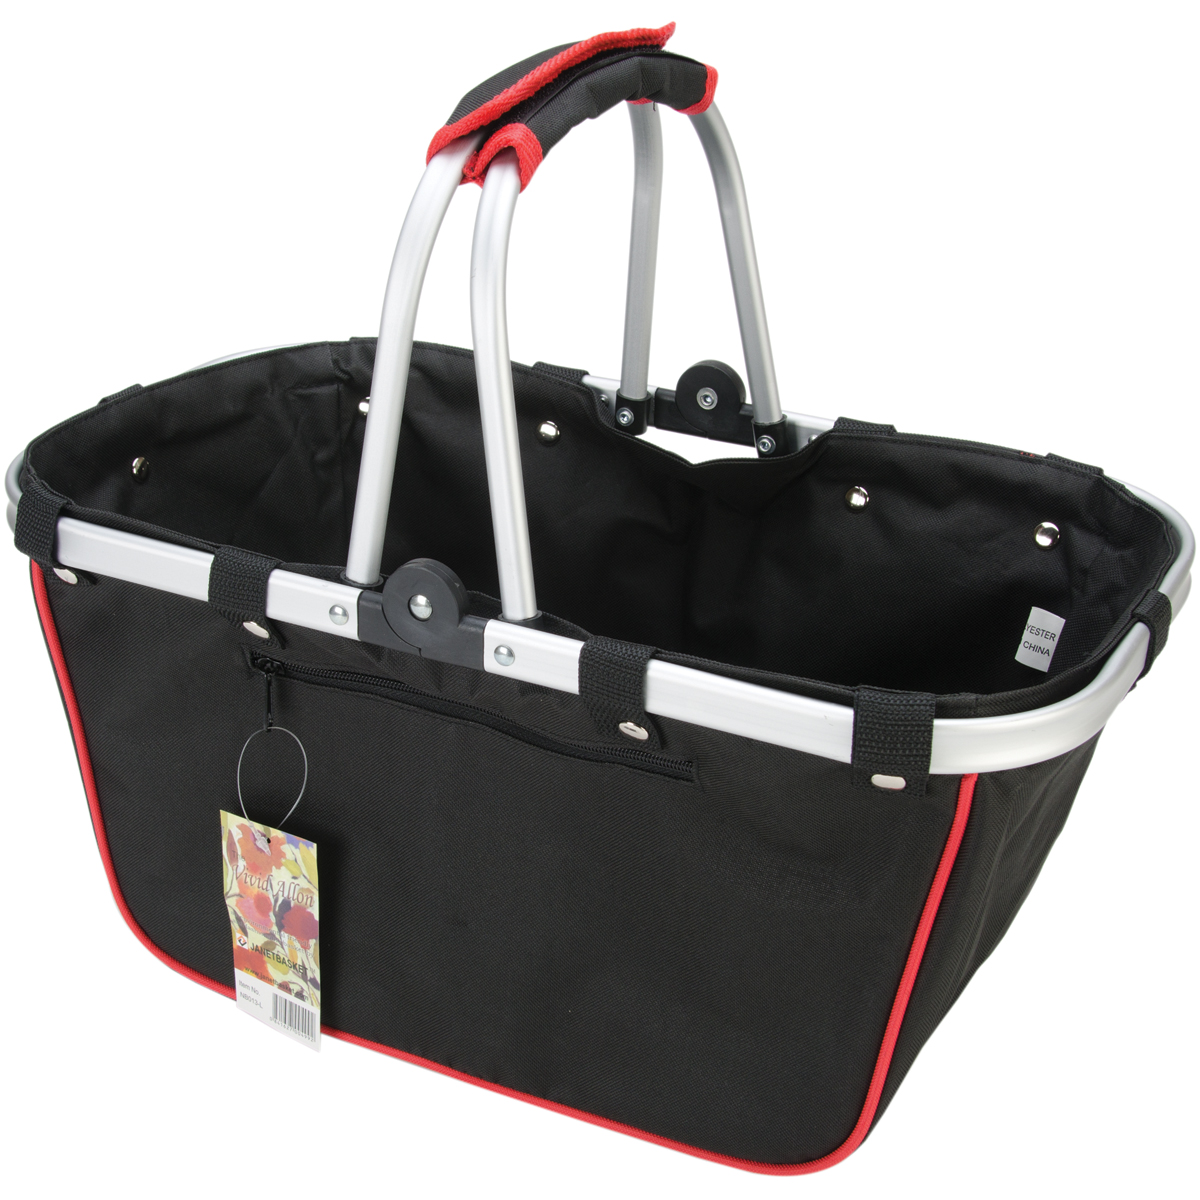 "JanetBasket Black/Red Large Aluminum Frame Basket, 18"" x 10"" x 9.5"""